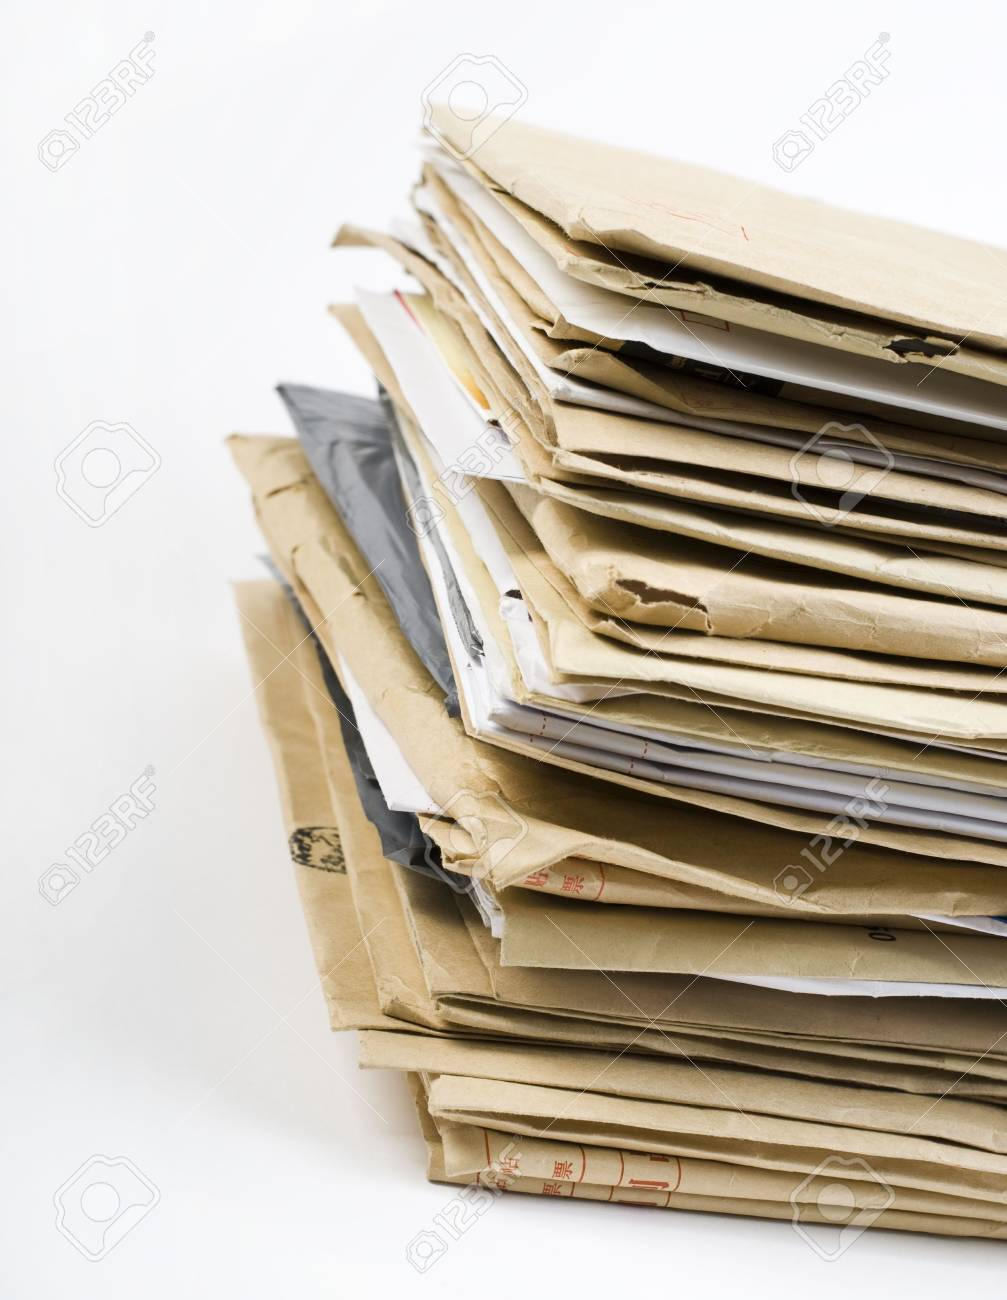 File Stack close up shot on white background Stock Photo - 6904240